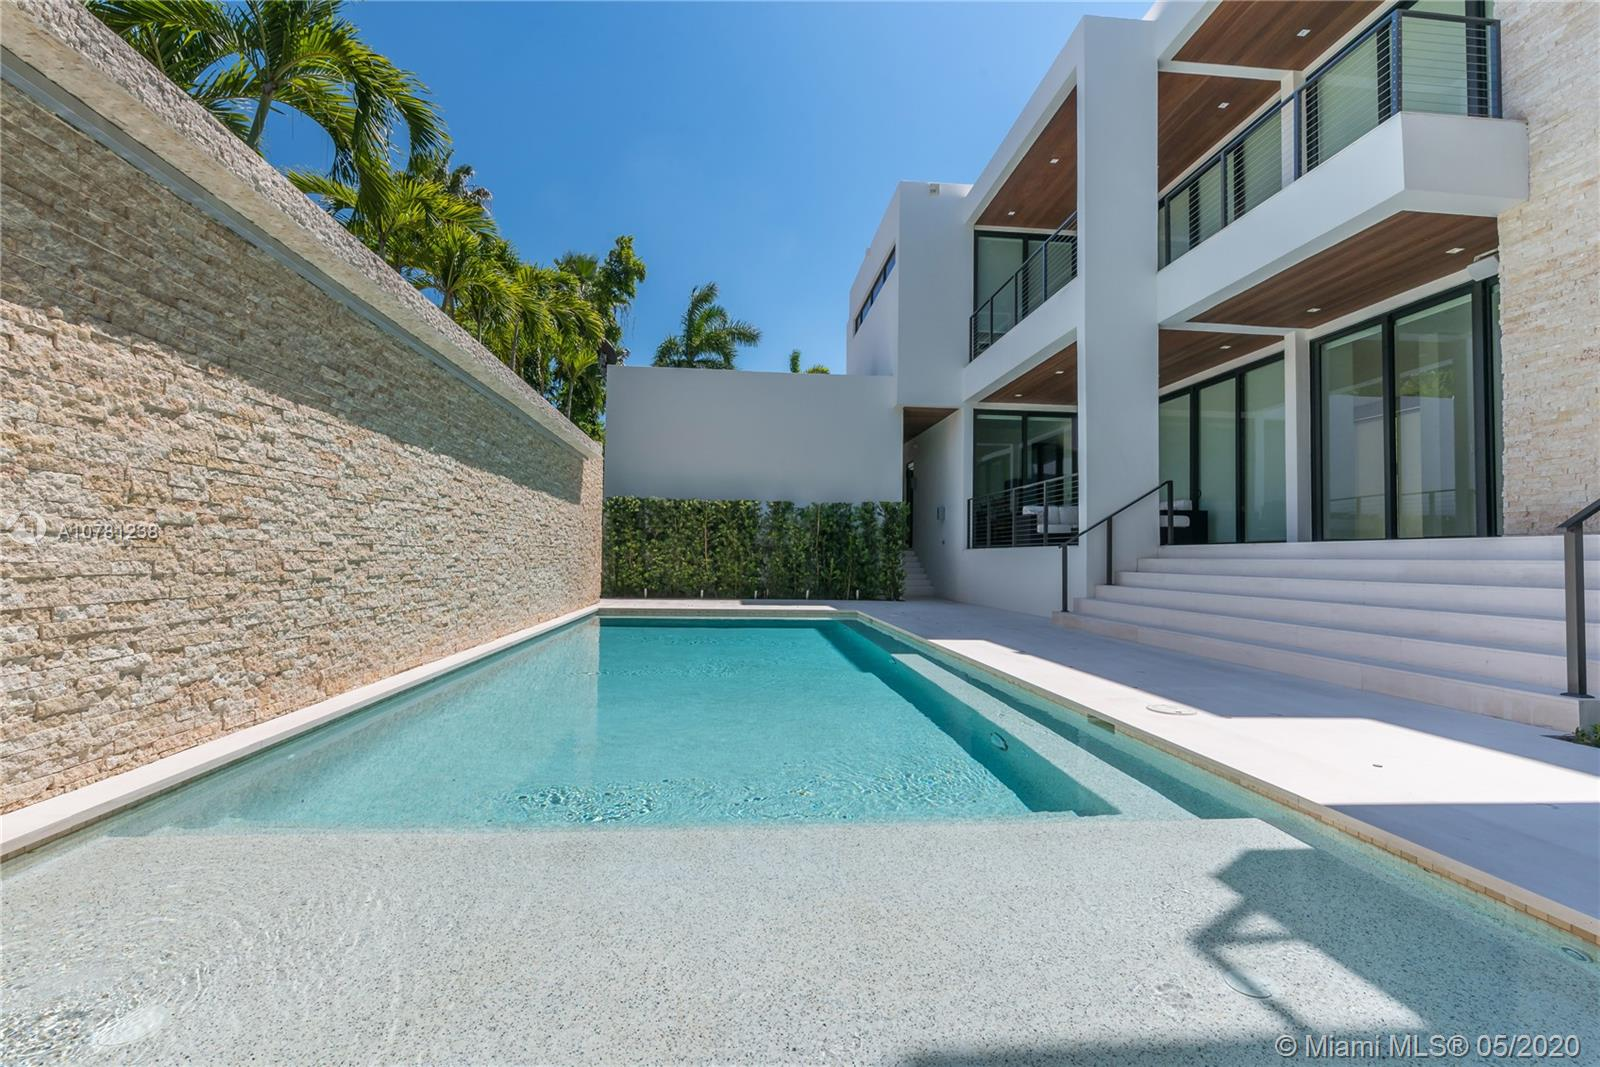 """New Construction on the most desirable street in Miami Beach, Rivo Alto Drive. This """"statement property"""" is a 5 bedroom, 5 ½ bathroom residence with over 5,000 adjusted interior sq feet. This smart home features Lutron window treatments, an outdoor Jacuzzi, heated pool with a waterfall feature and an outdoor summer kitchen. On the 3rd Floor, a very rare 1000+ sq foot roof deck with Panoramic Bay views. Also features a 2 car garage."""